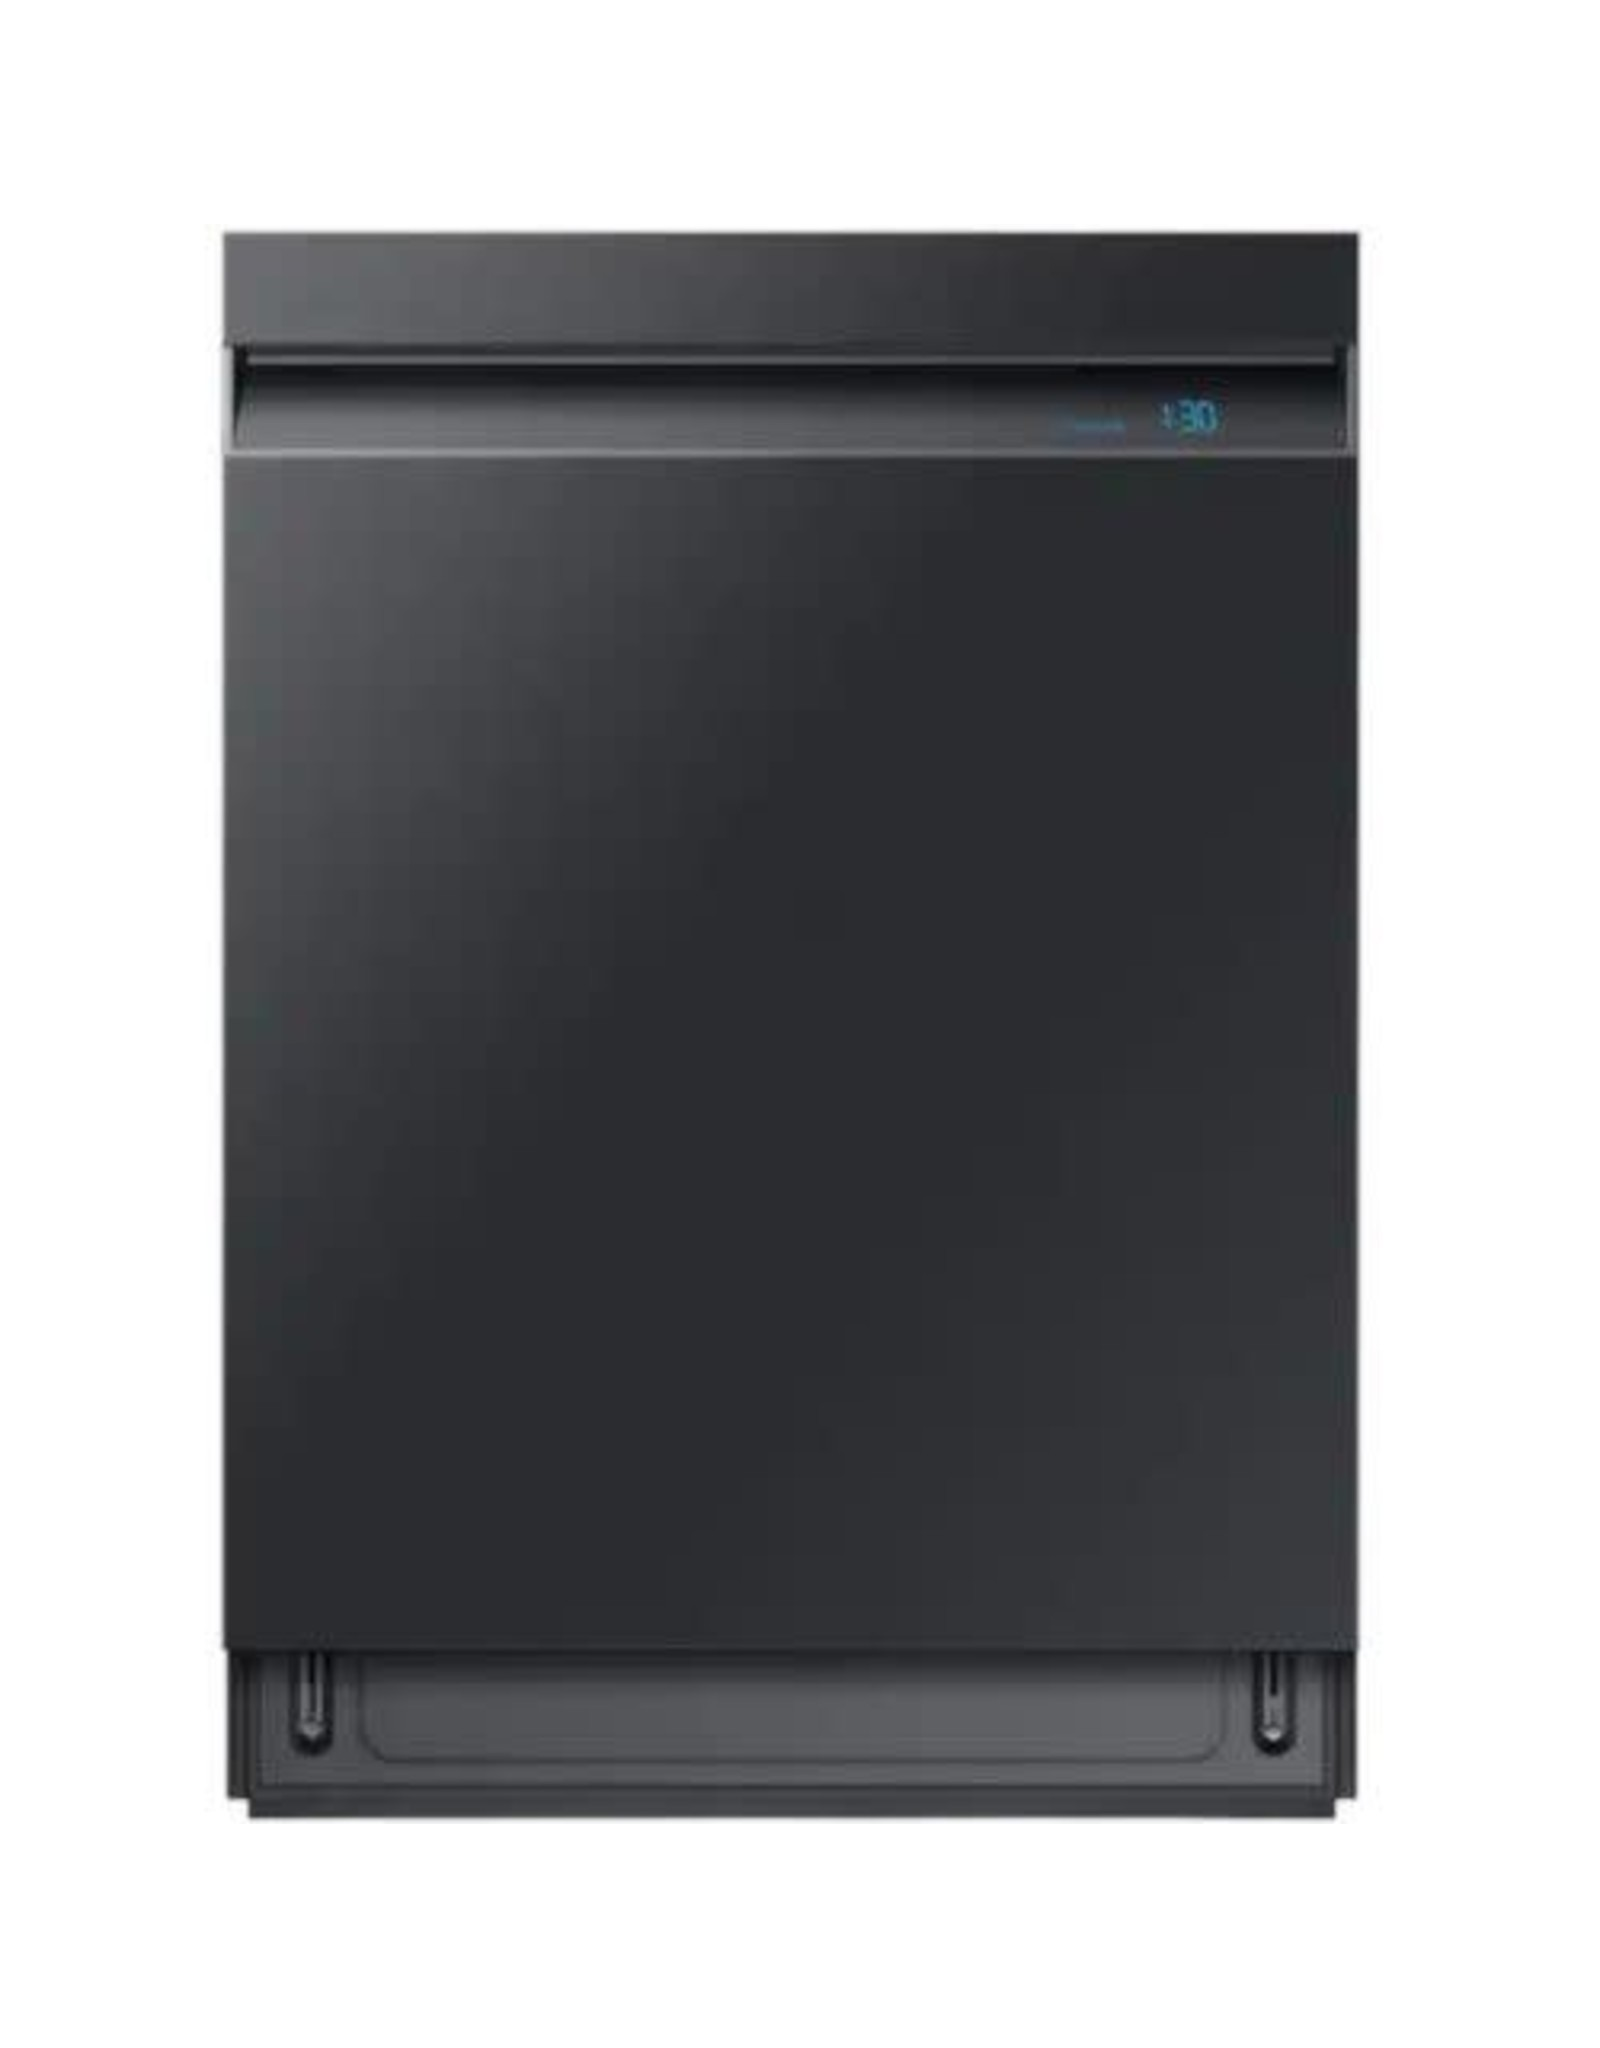 SAMSUNG DW80R9950UG Samsung 24 in. Top Control Linear Wash Tall Tub Dishwasher in Fingerprint Resistant Black Stainless, 3rd Rack, 39 dBA